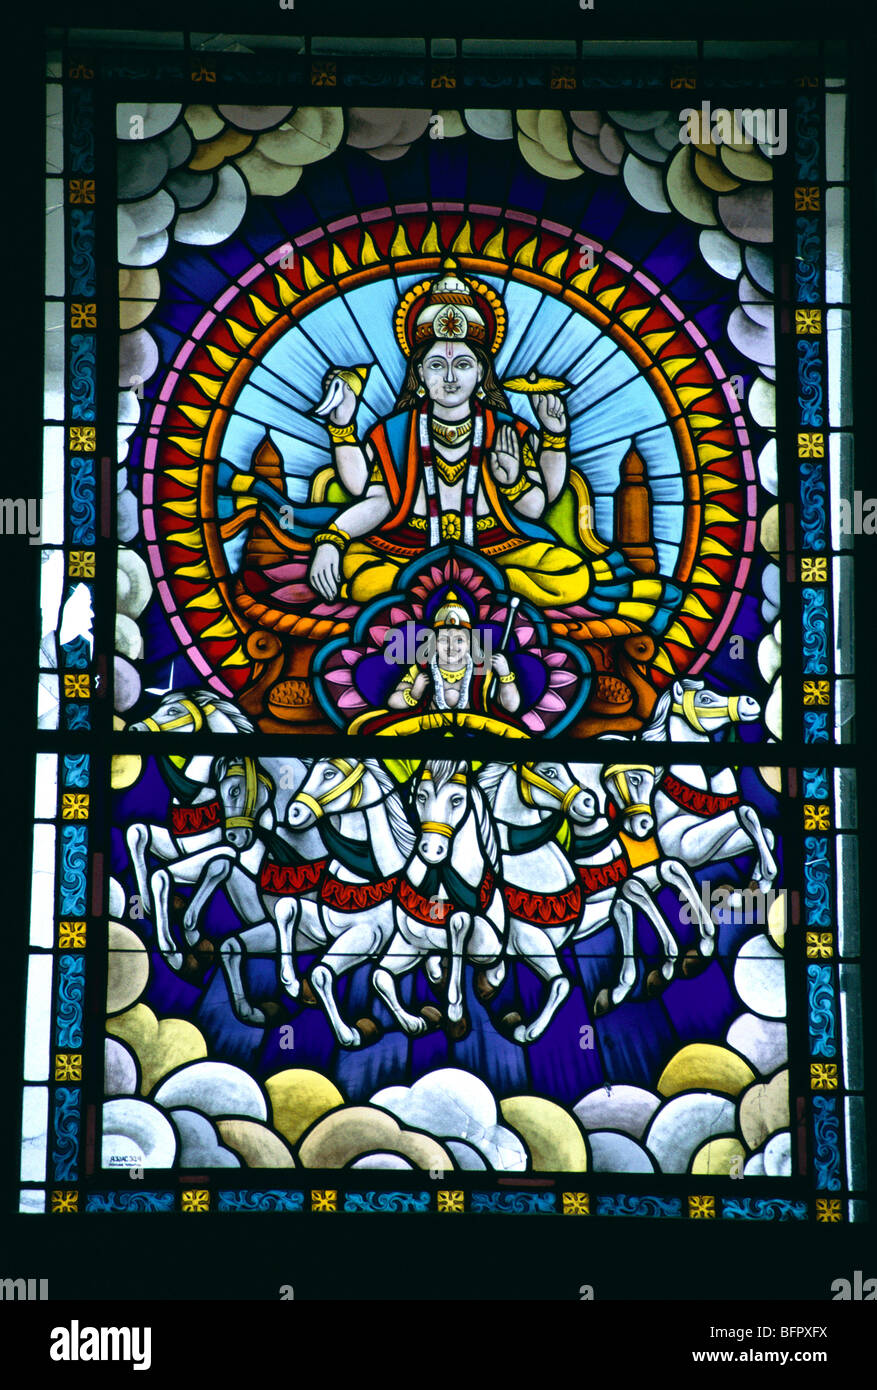 MPC 66662 : Arjun and Krishna on stained glass ; Jaipur ; Rajasthan ; India - Stock Image